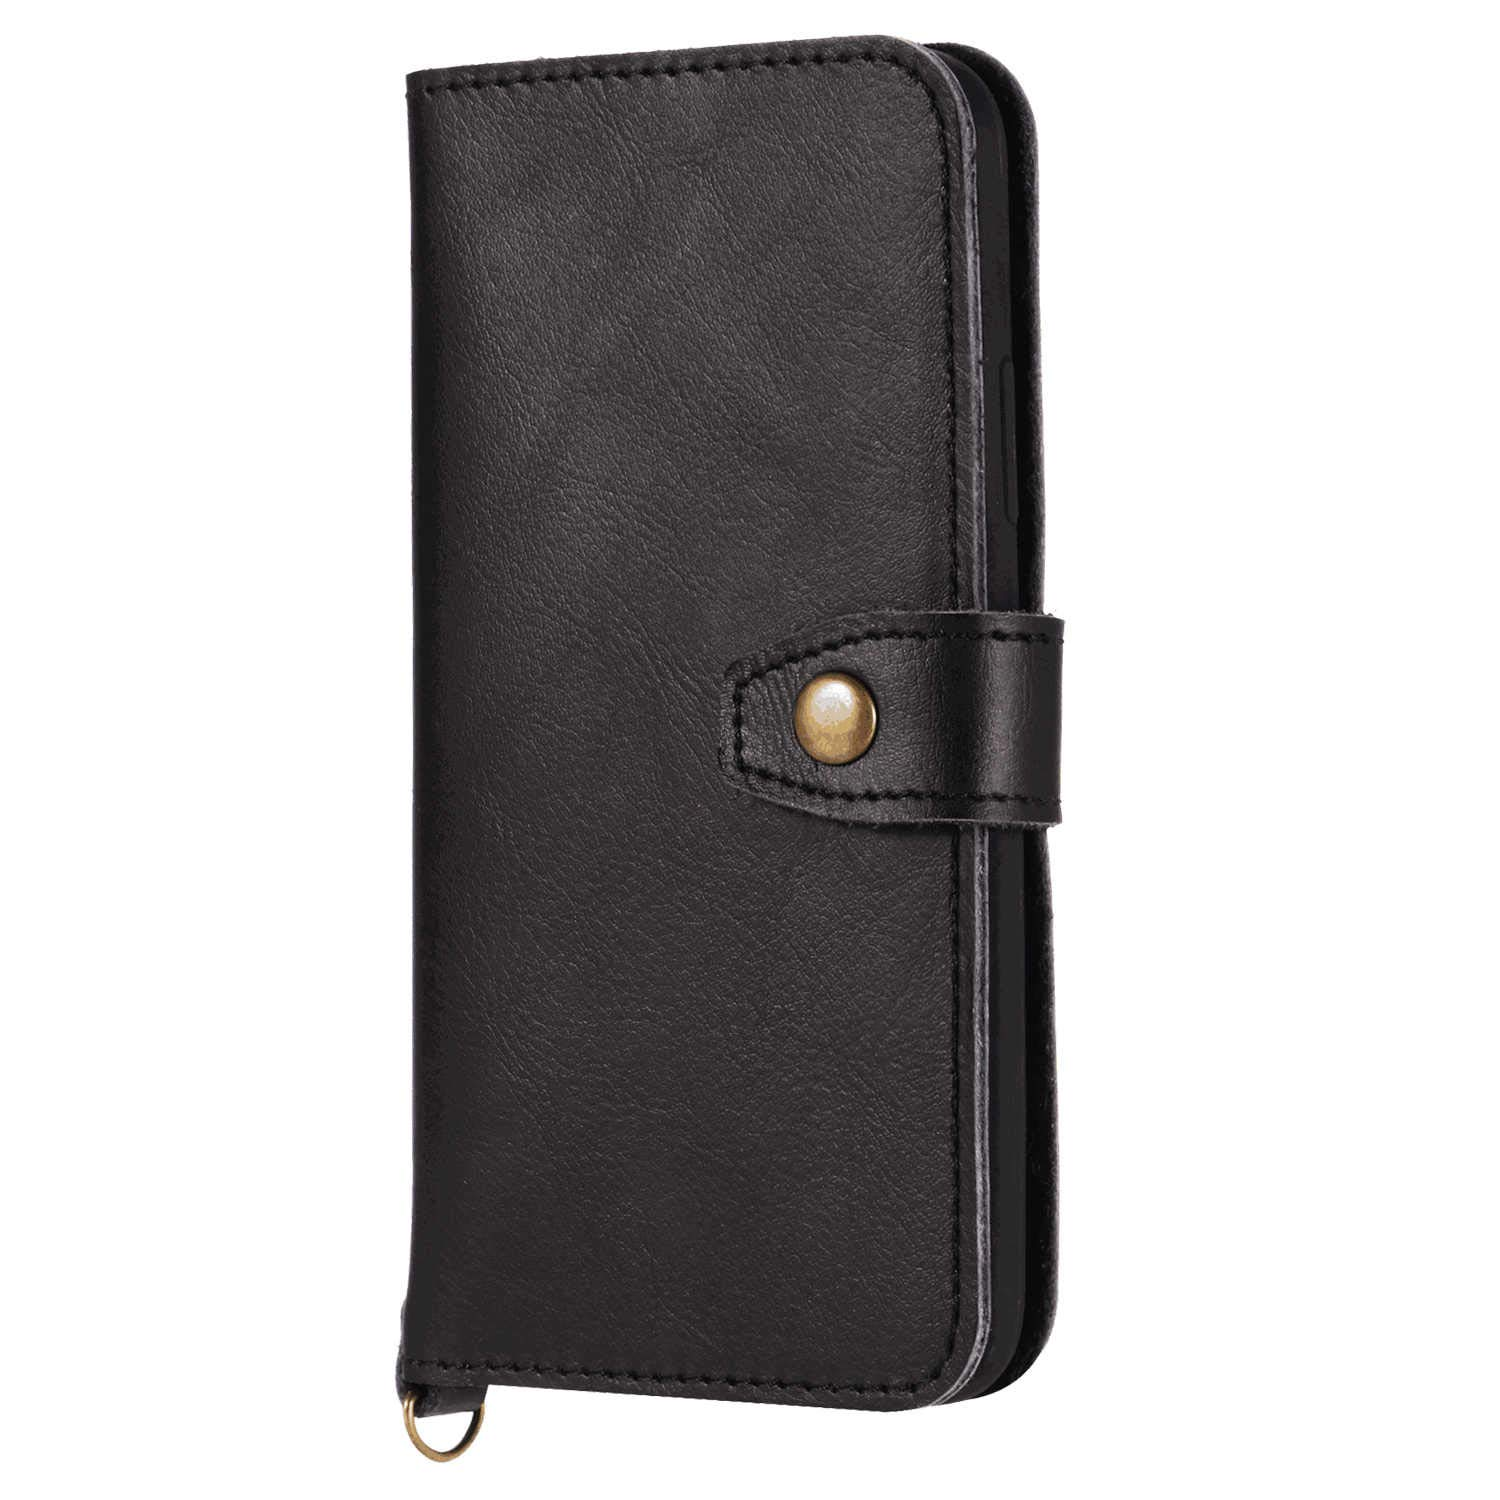 Leather Flip Case Fit for iPhone XR, Black Wallet Cover for iPhone XR